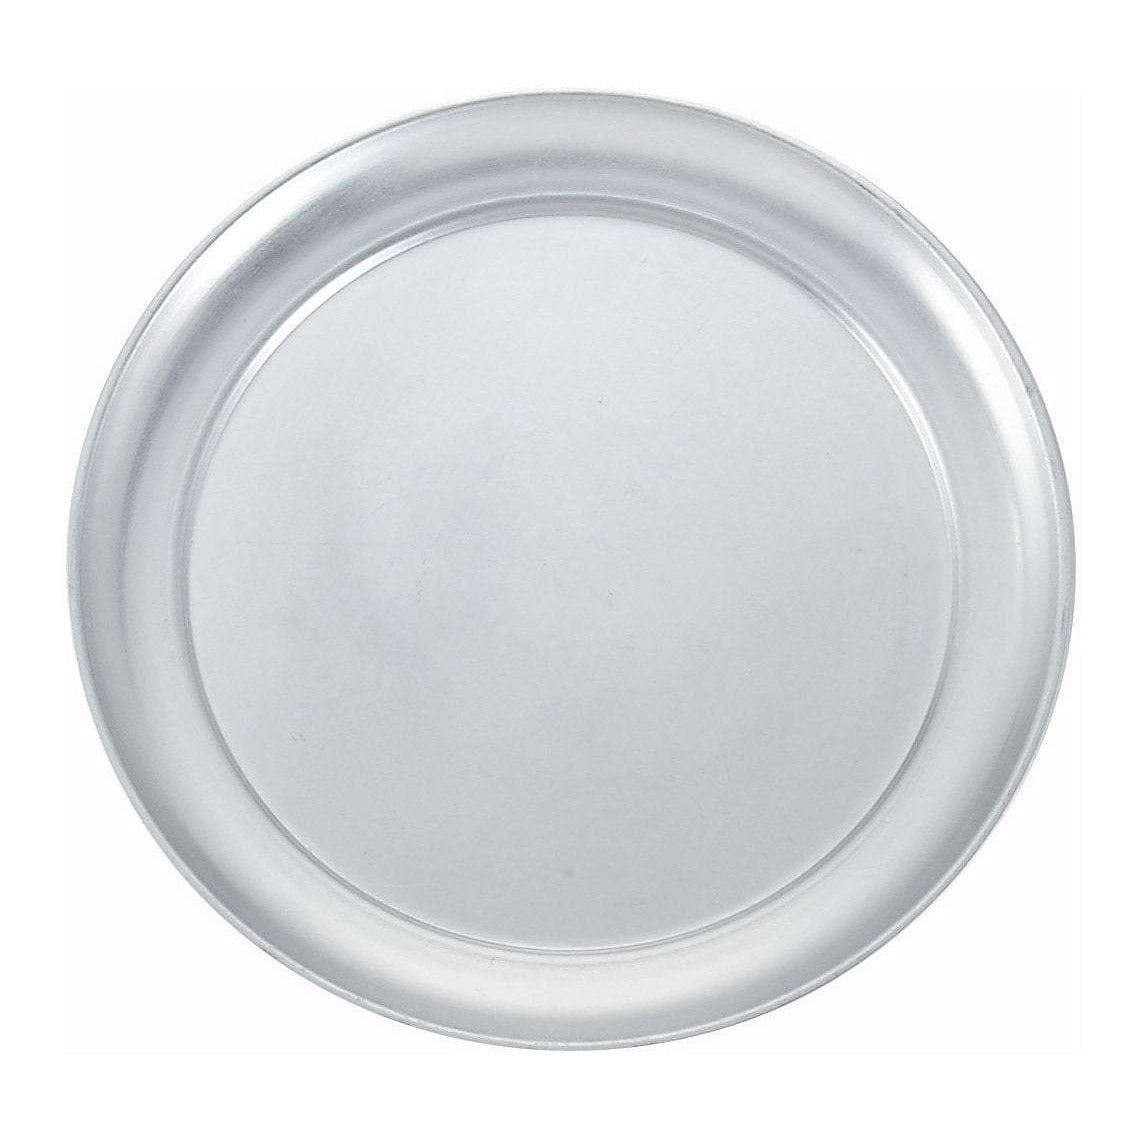 "Winco - APZT-11 - 11"" Wide Rim Pizza Tray, Aluminum - Pizza Supplies"